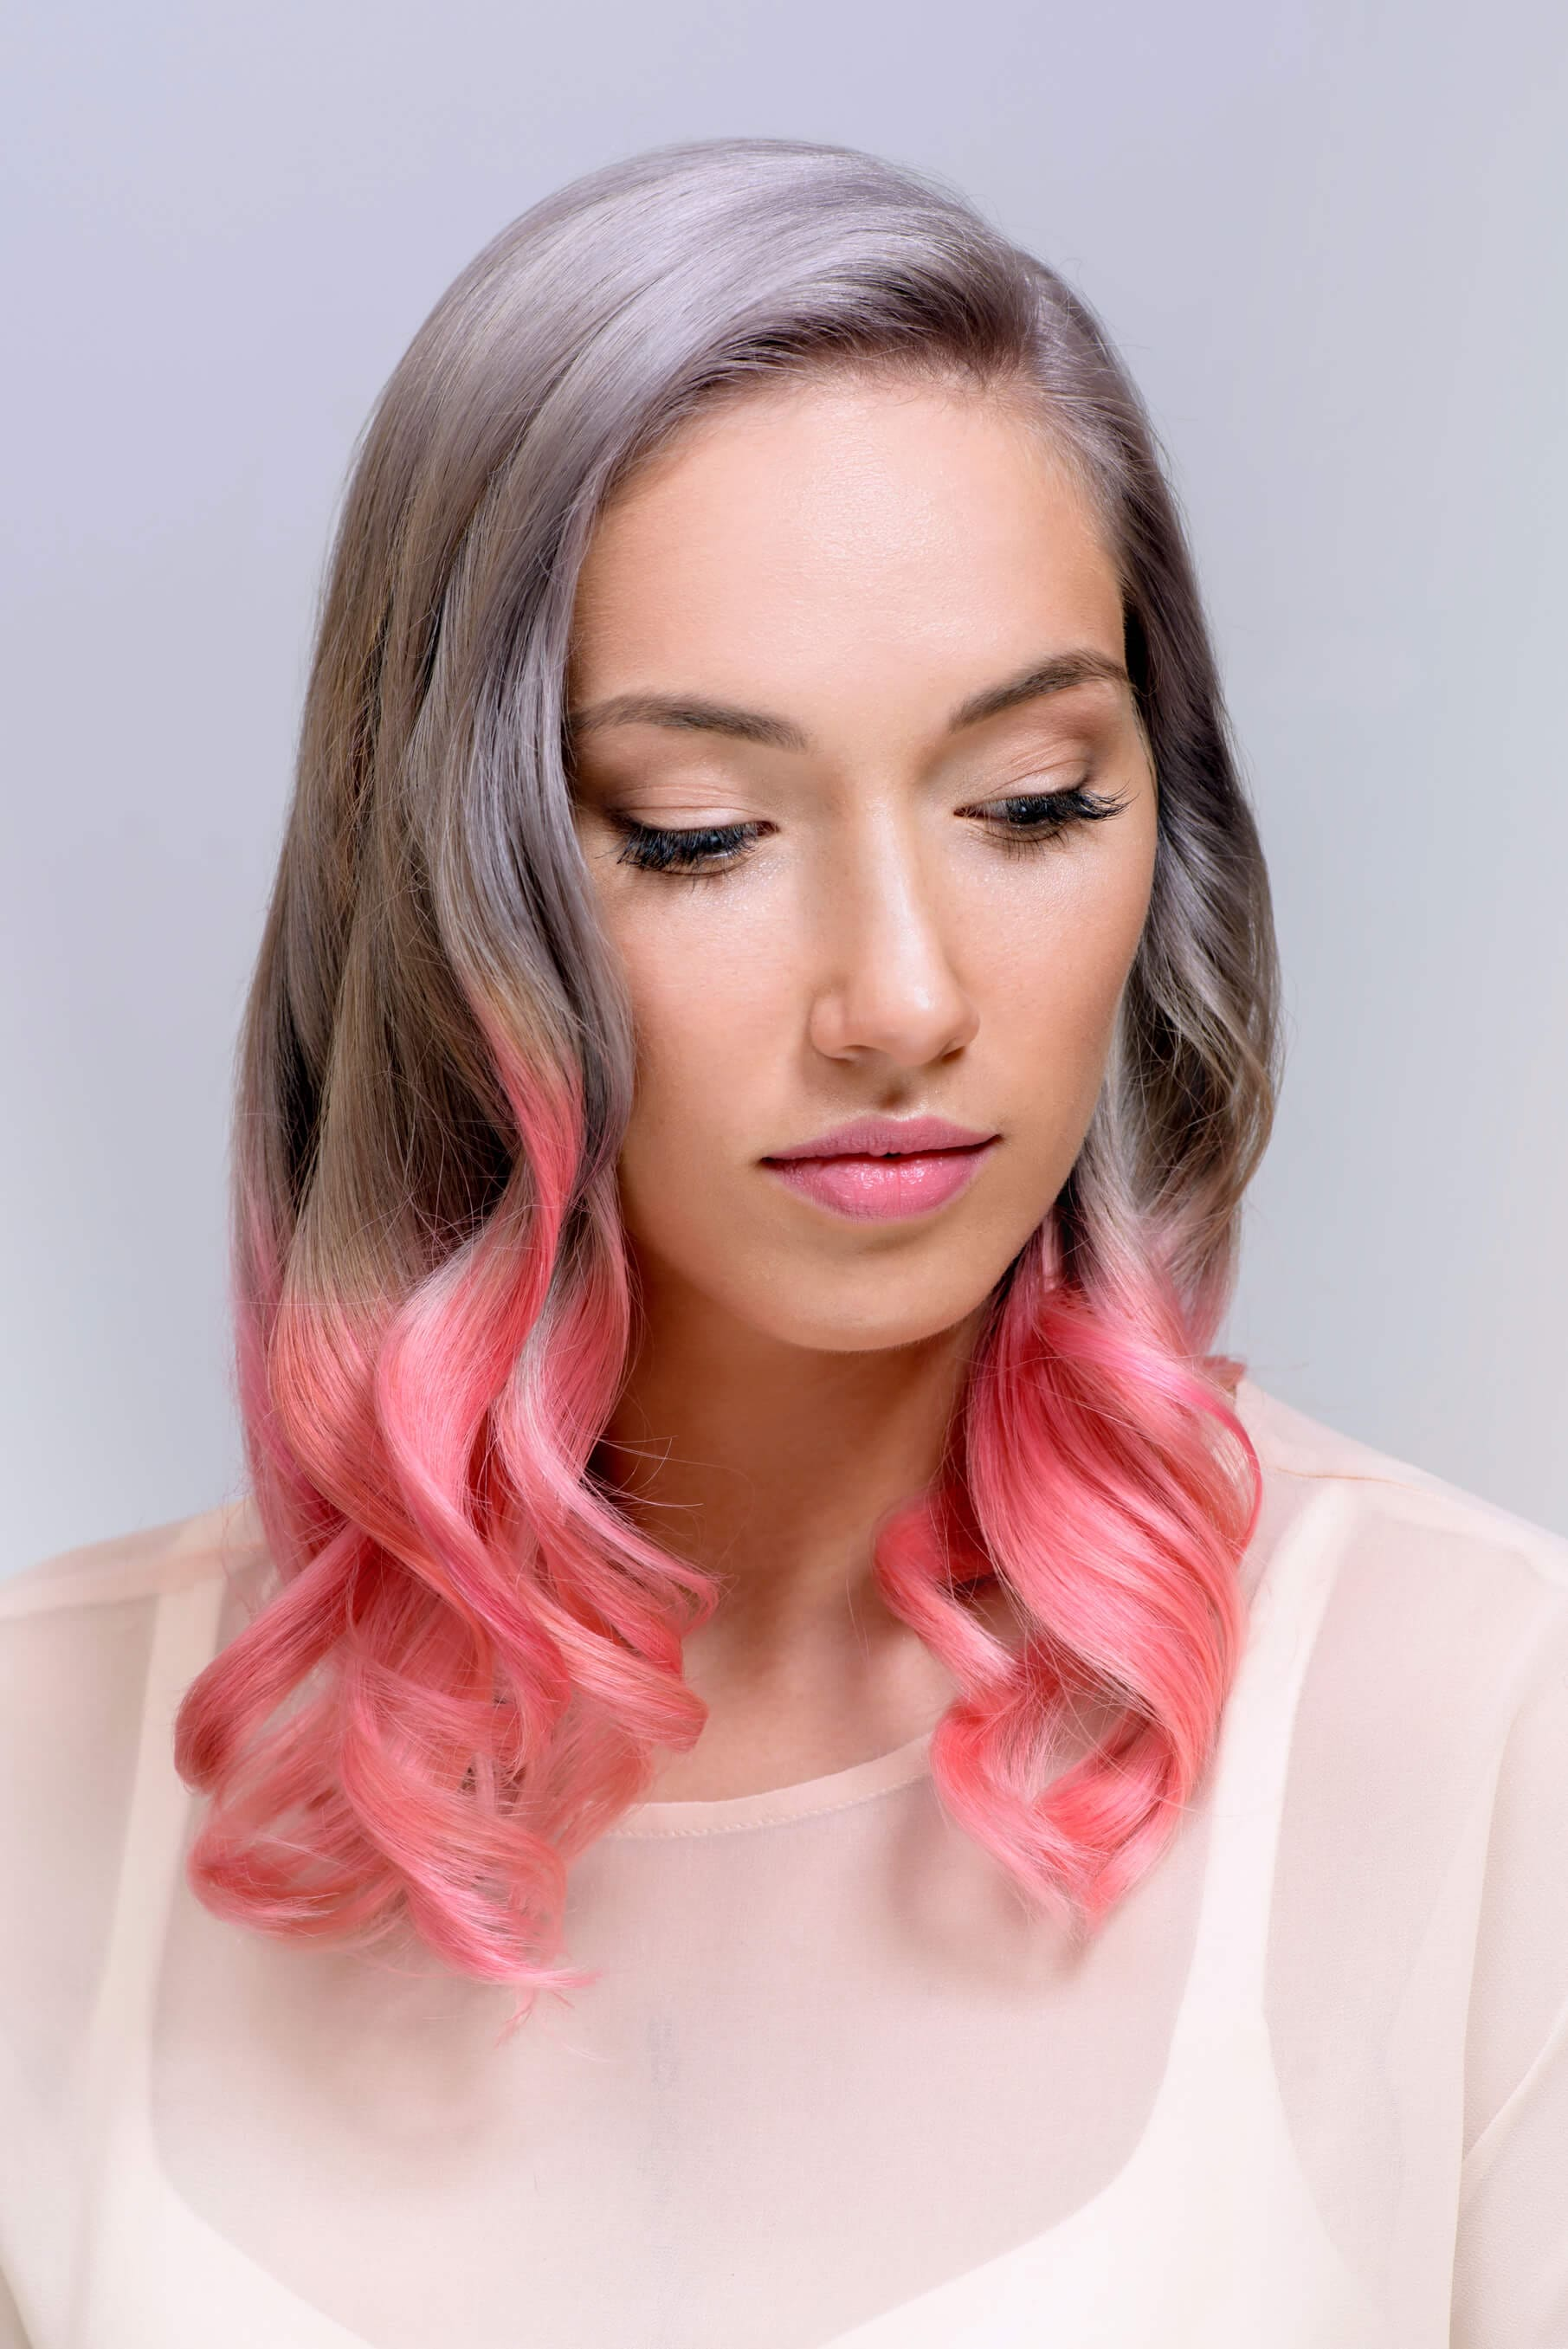 Pink Hairstyles for Breast Cancer Awareness Month